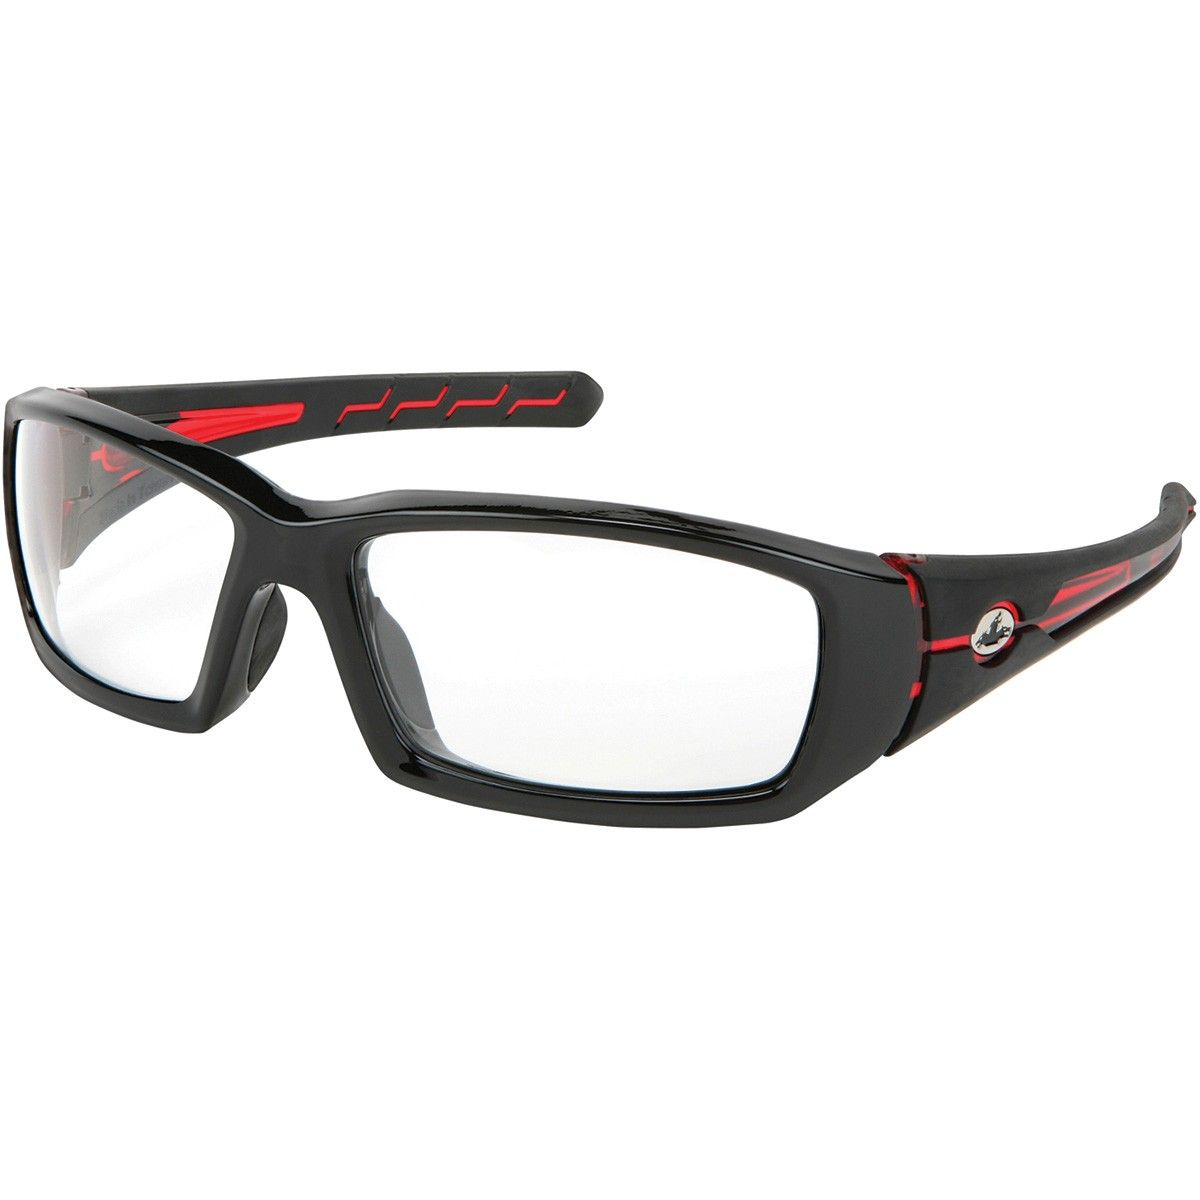 245548965d04a U.S. Safety PN1230PF Pantera PN2 Safety Glasses - Black Red Frame - Clear  MAX6 Anti-Fog Lens - U.S. Safety glasses are designed to provide  solution-based ...